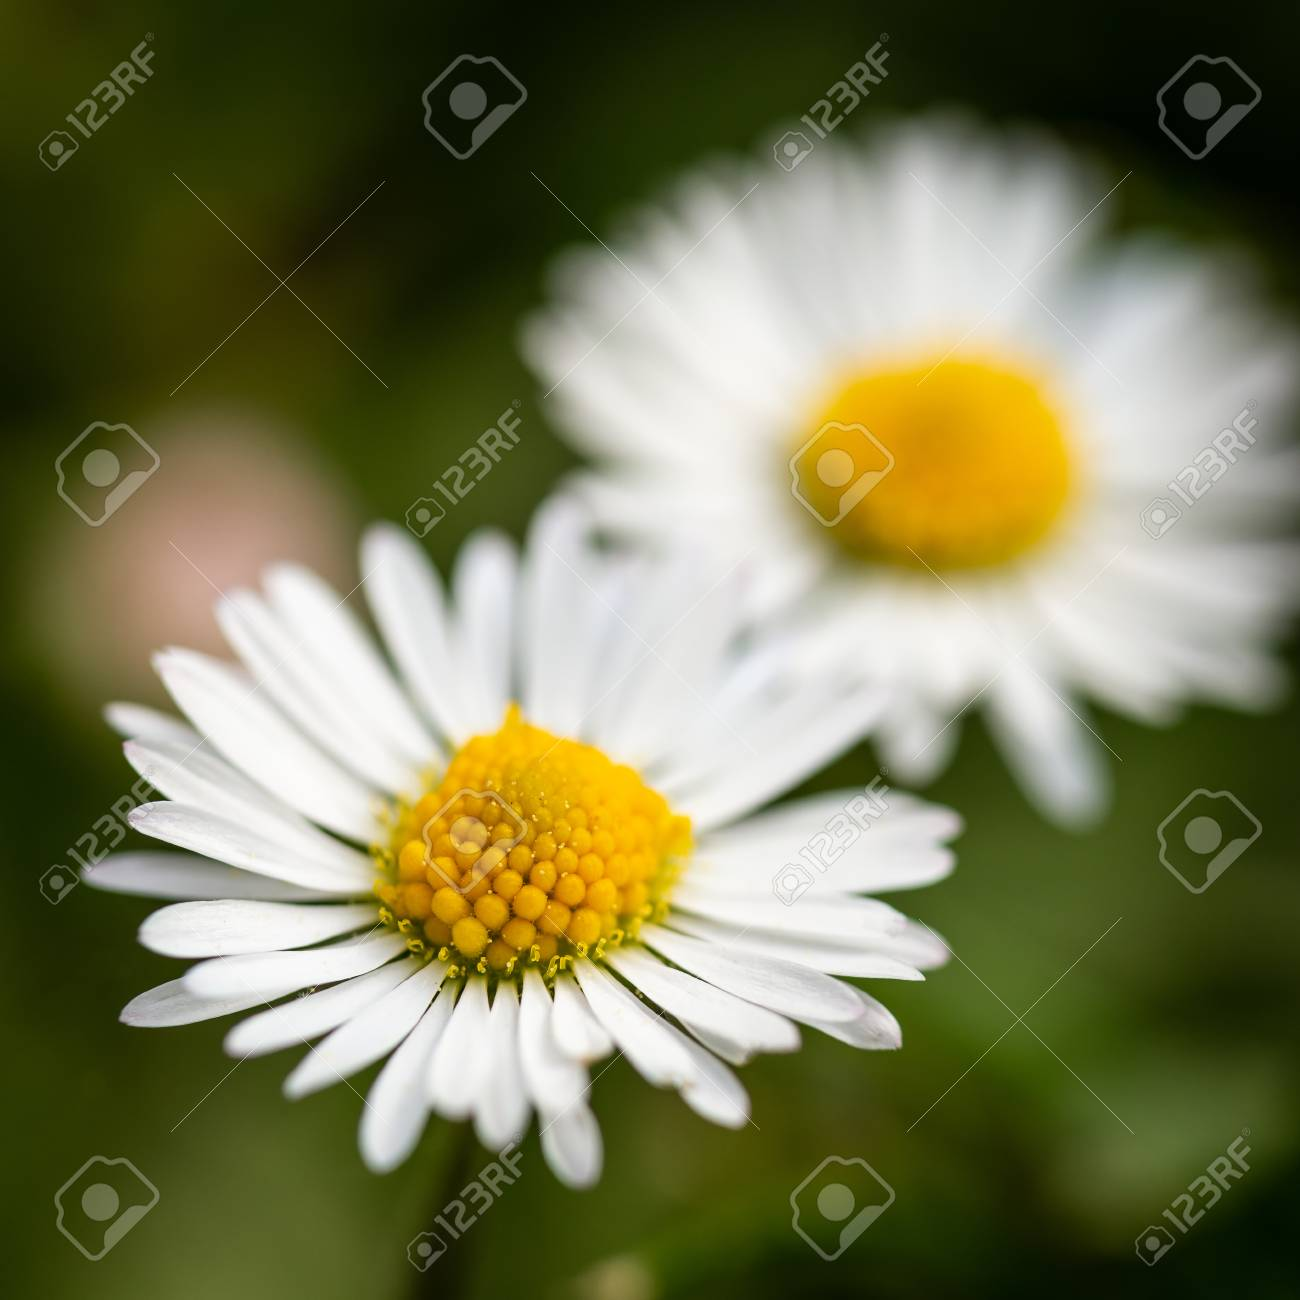 Square Photo With Two Nice Daisies Flowers Have White Leaves